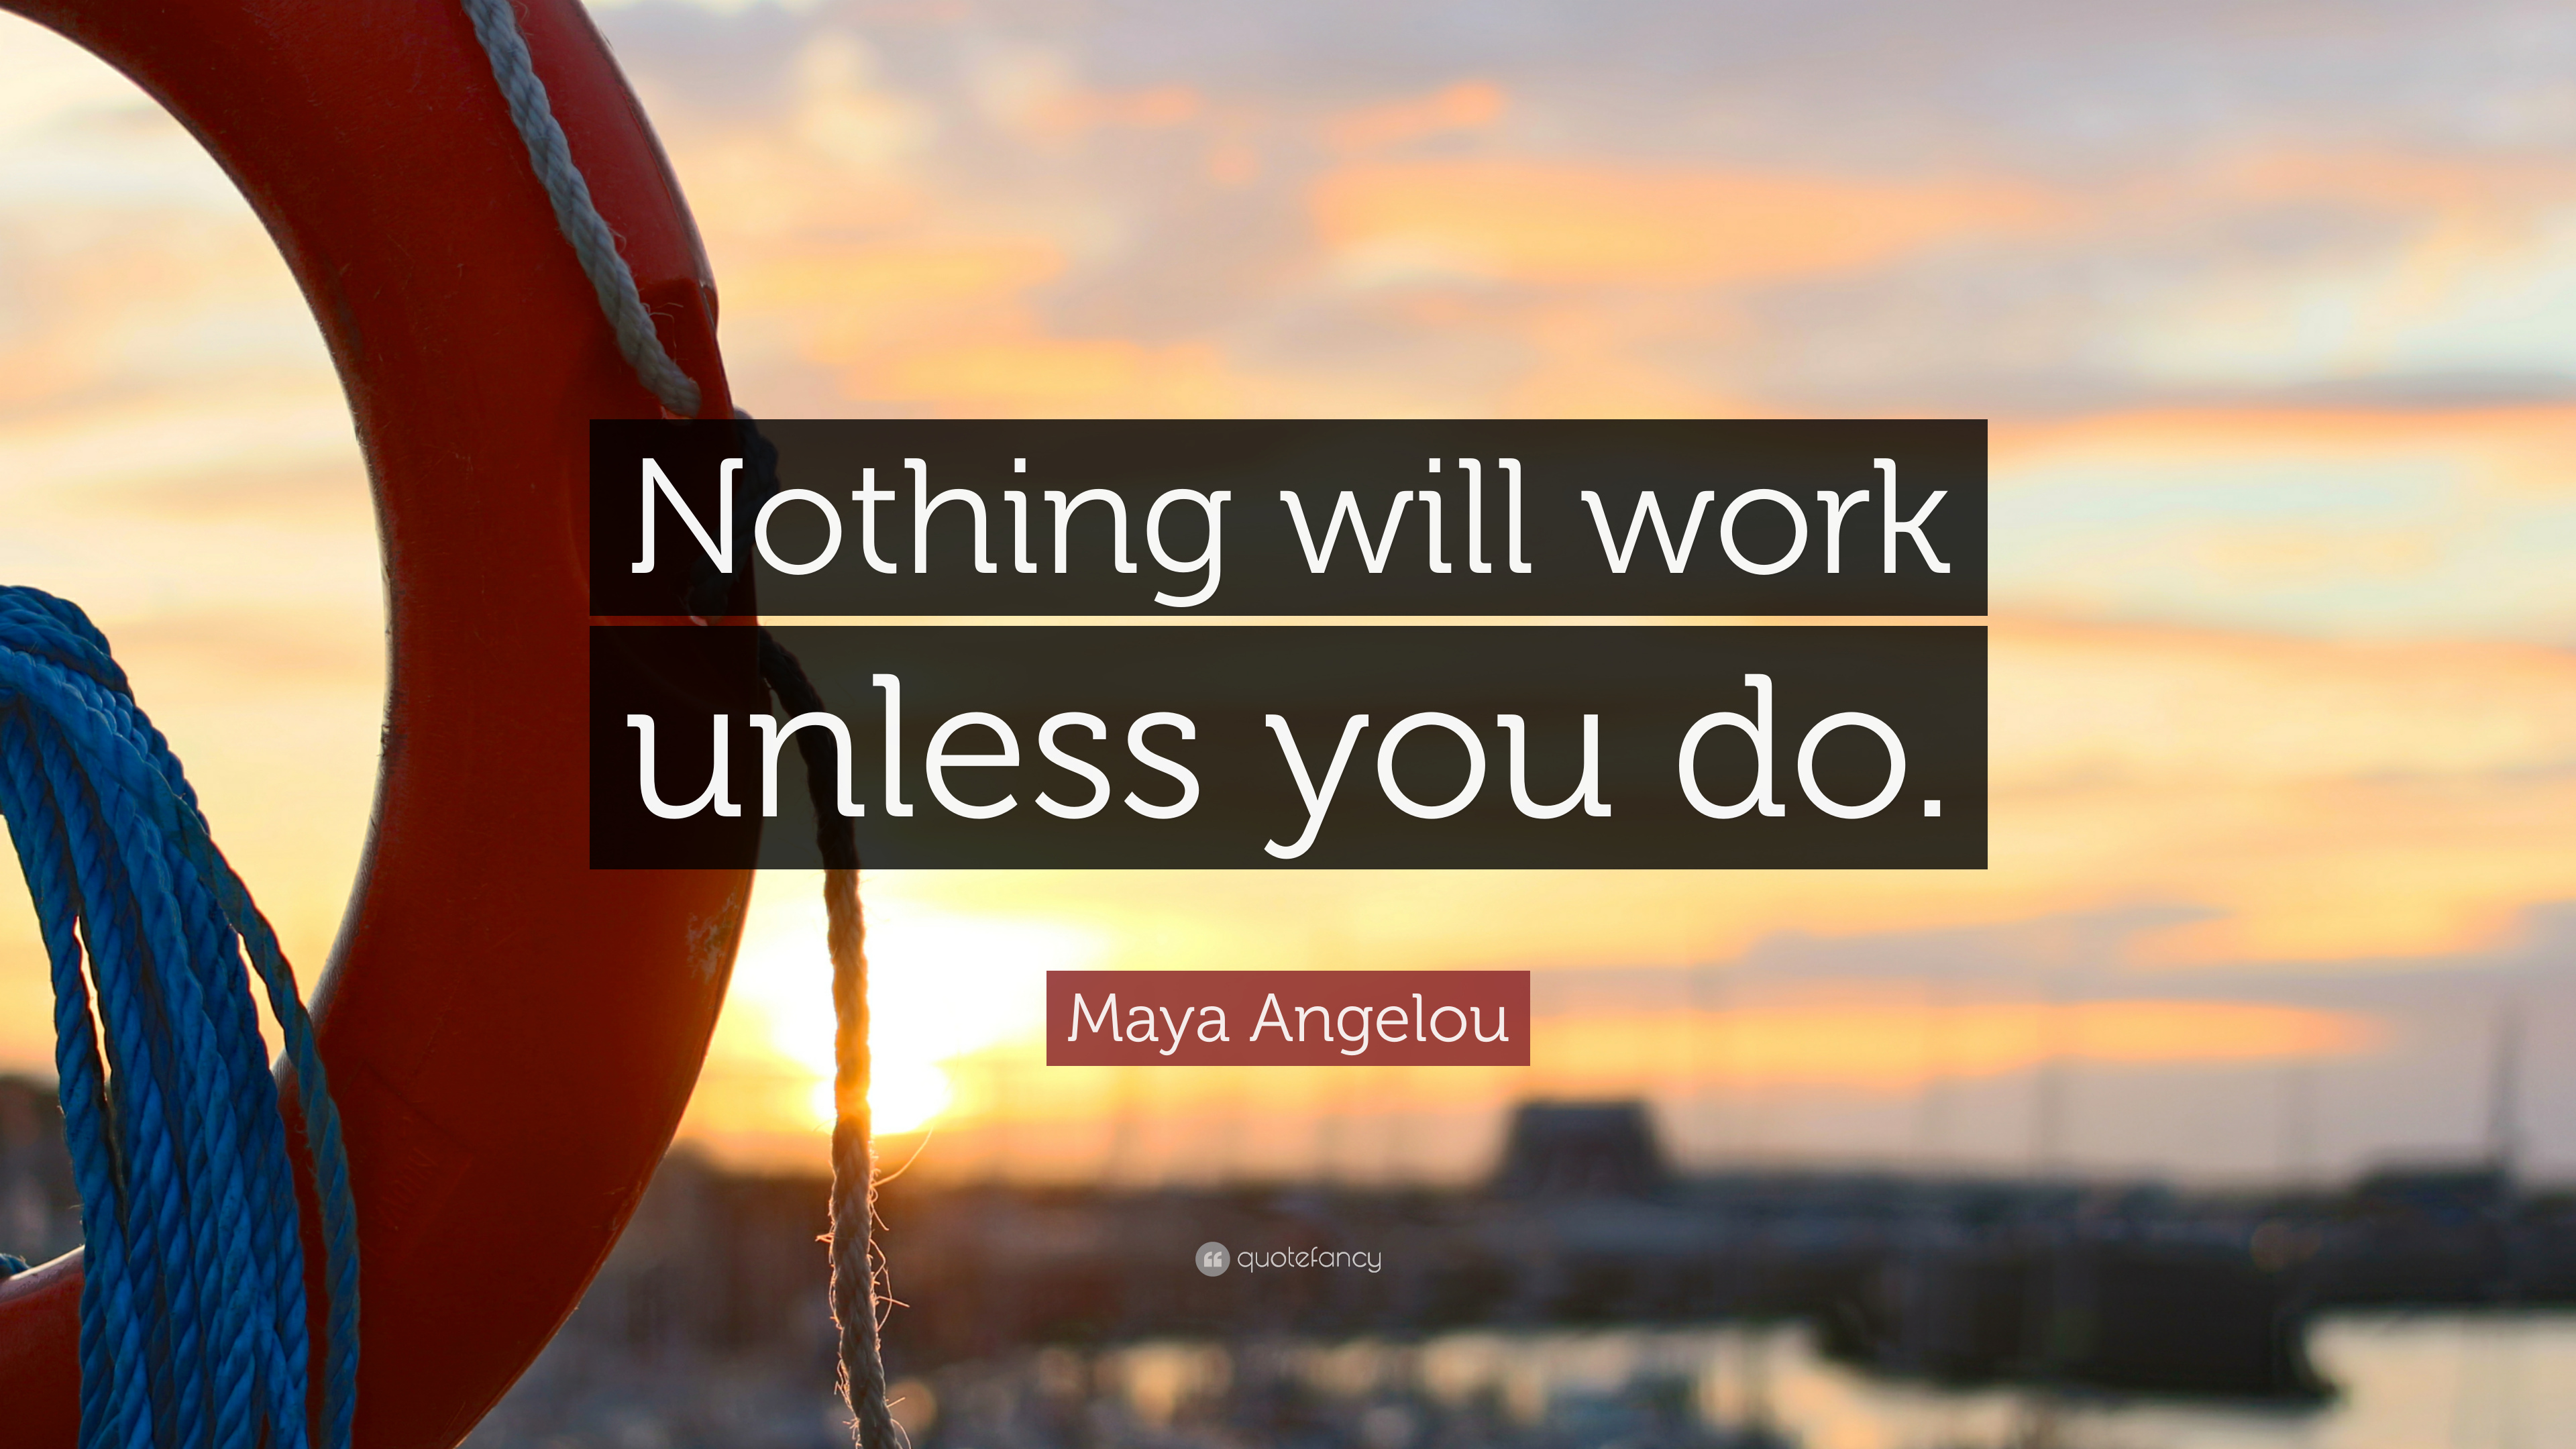 Startup Quotes Wallpaper Maya Angelou Quote Nothing Will Work Unless You Do 28